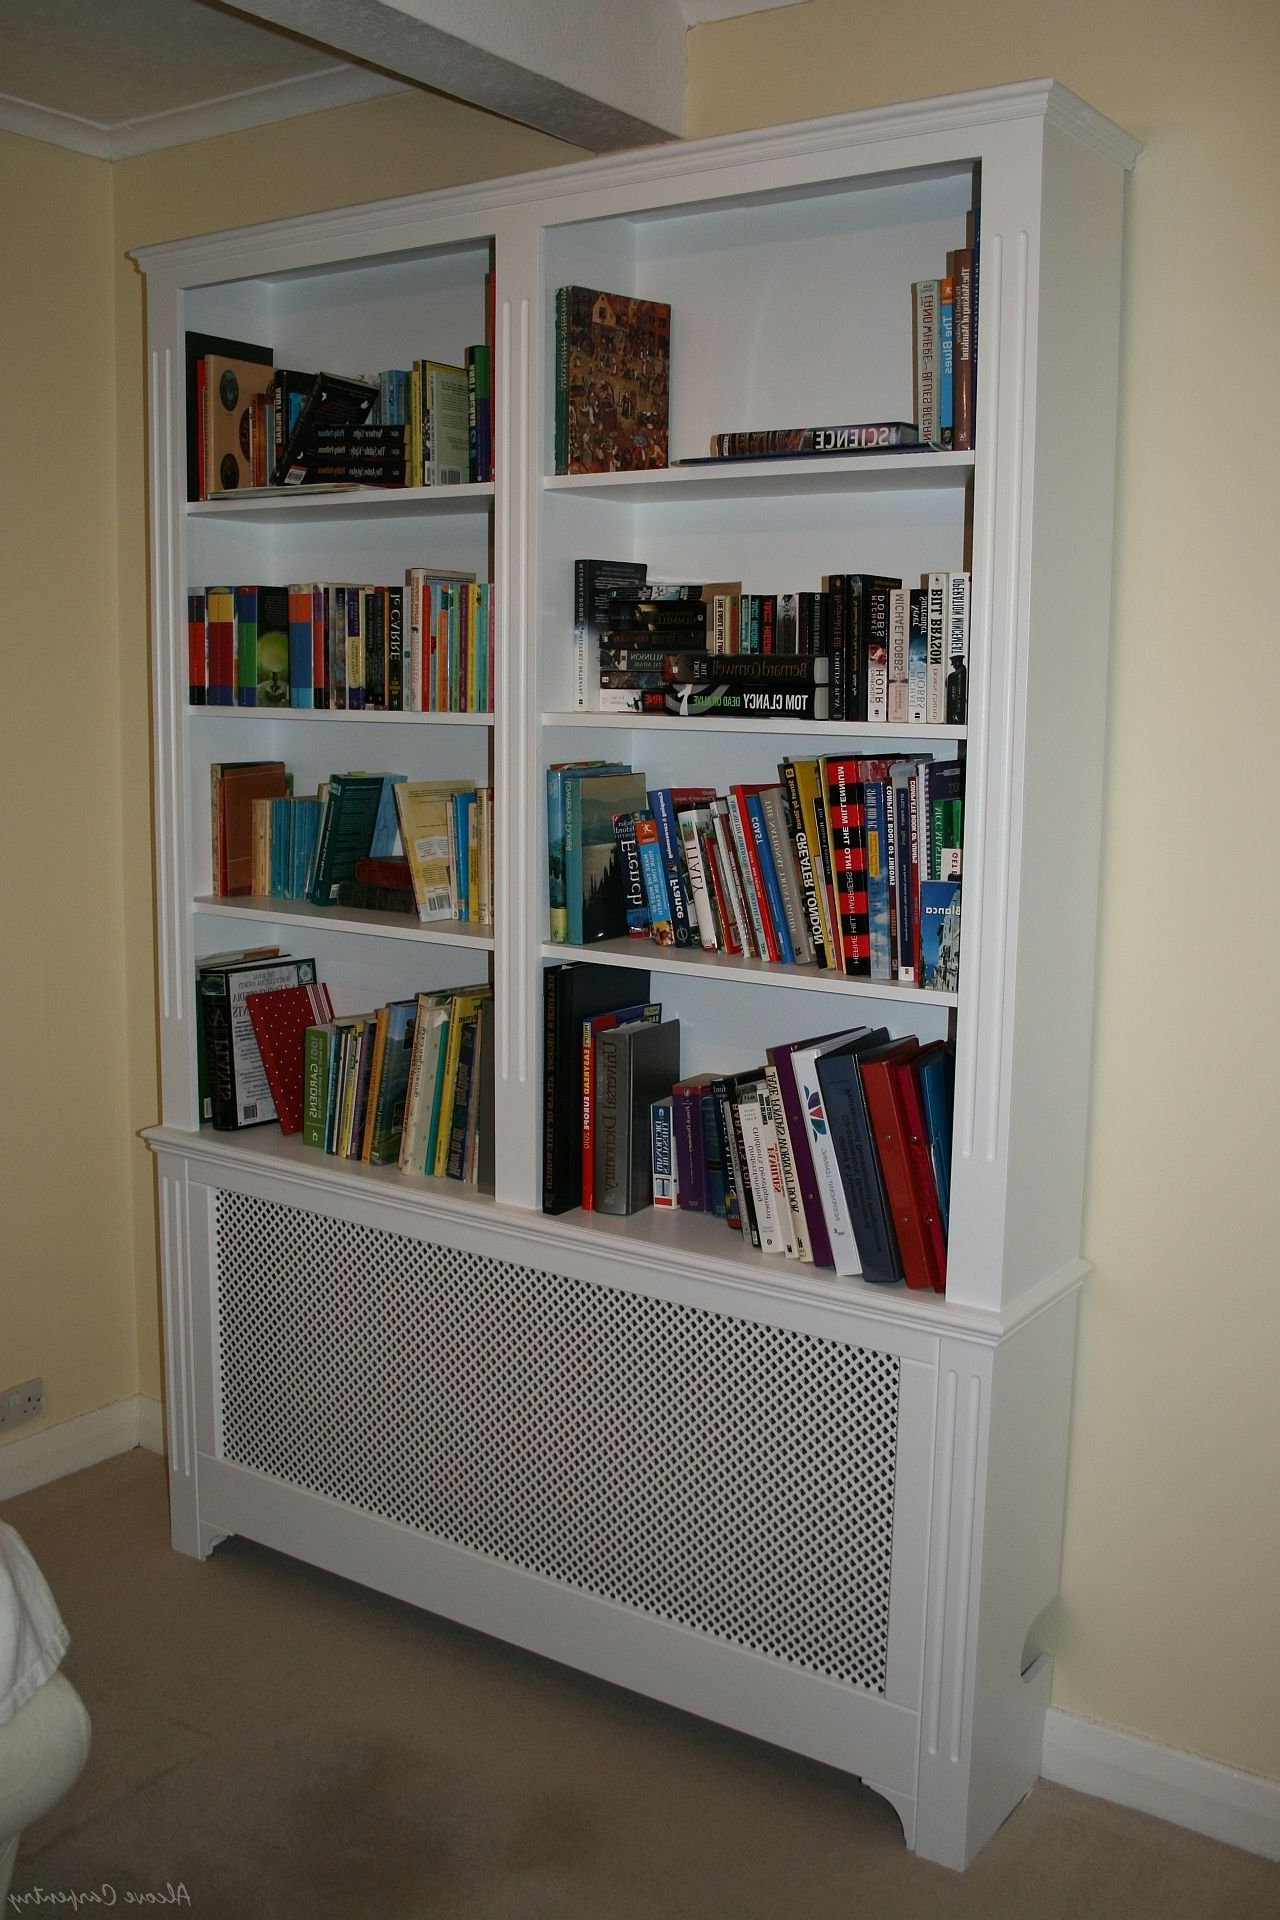 31 Model Radiator Bookcases Uk (View 2 of 15)